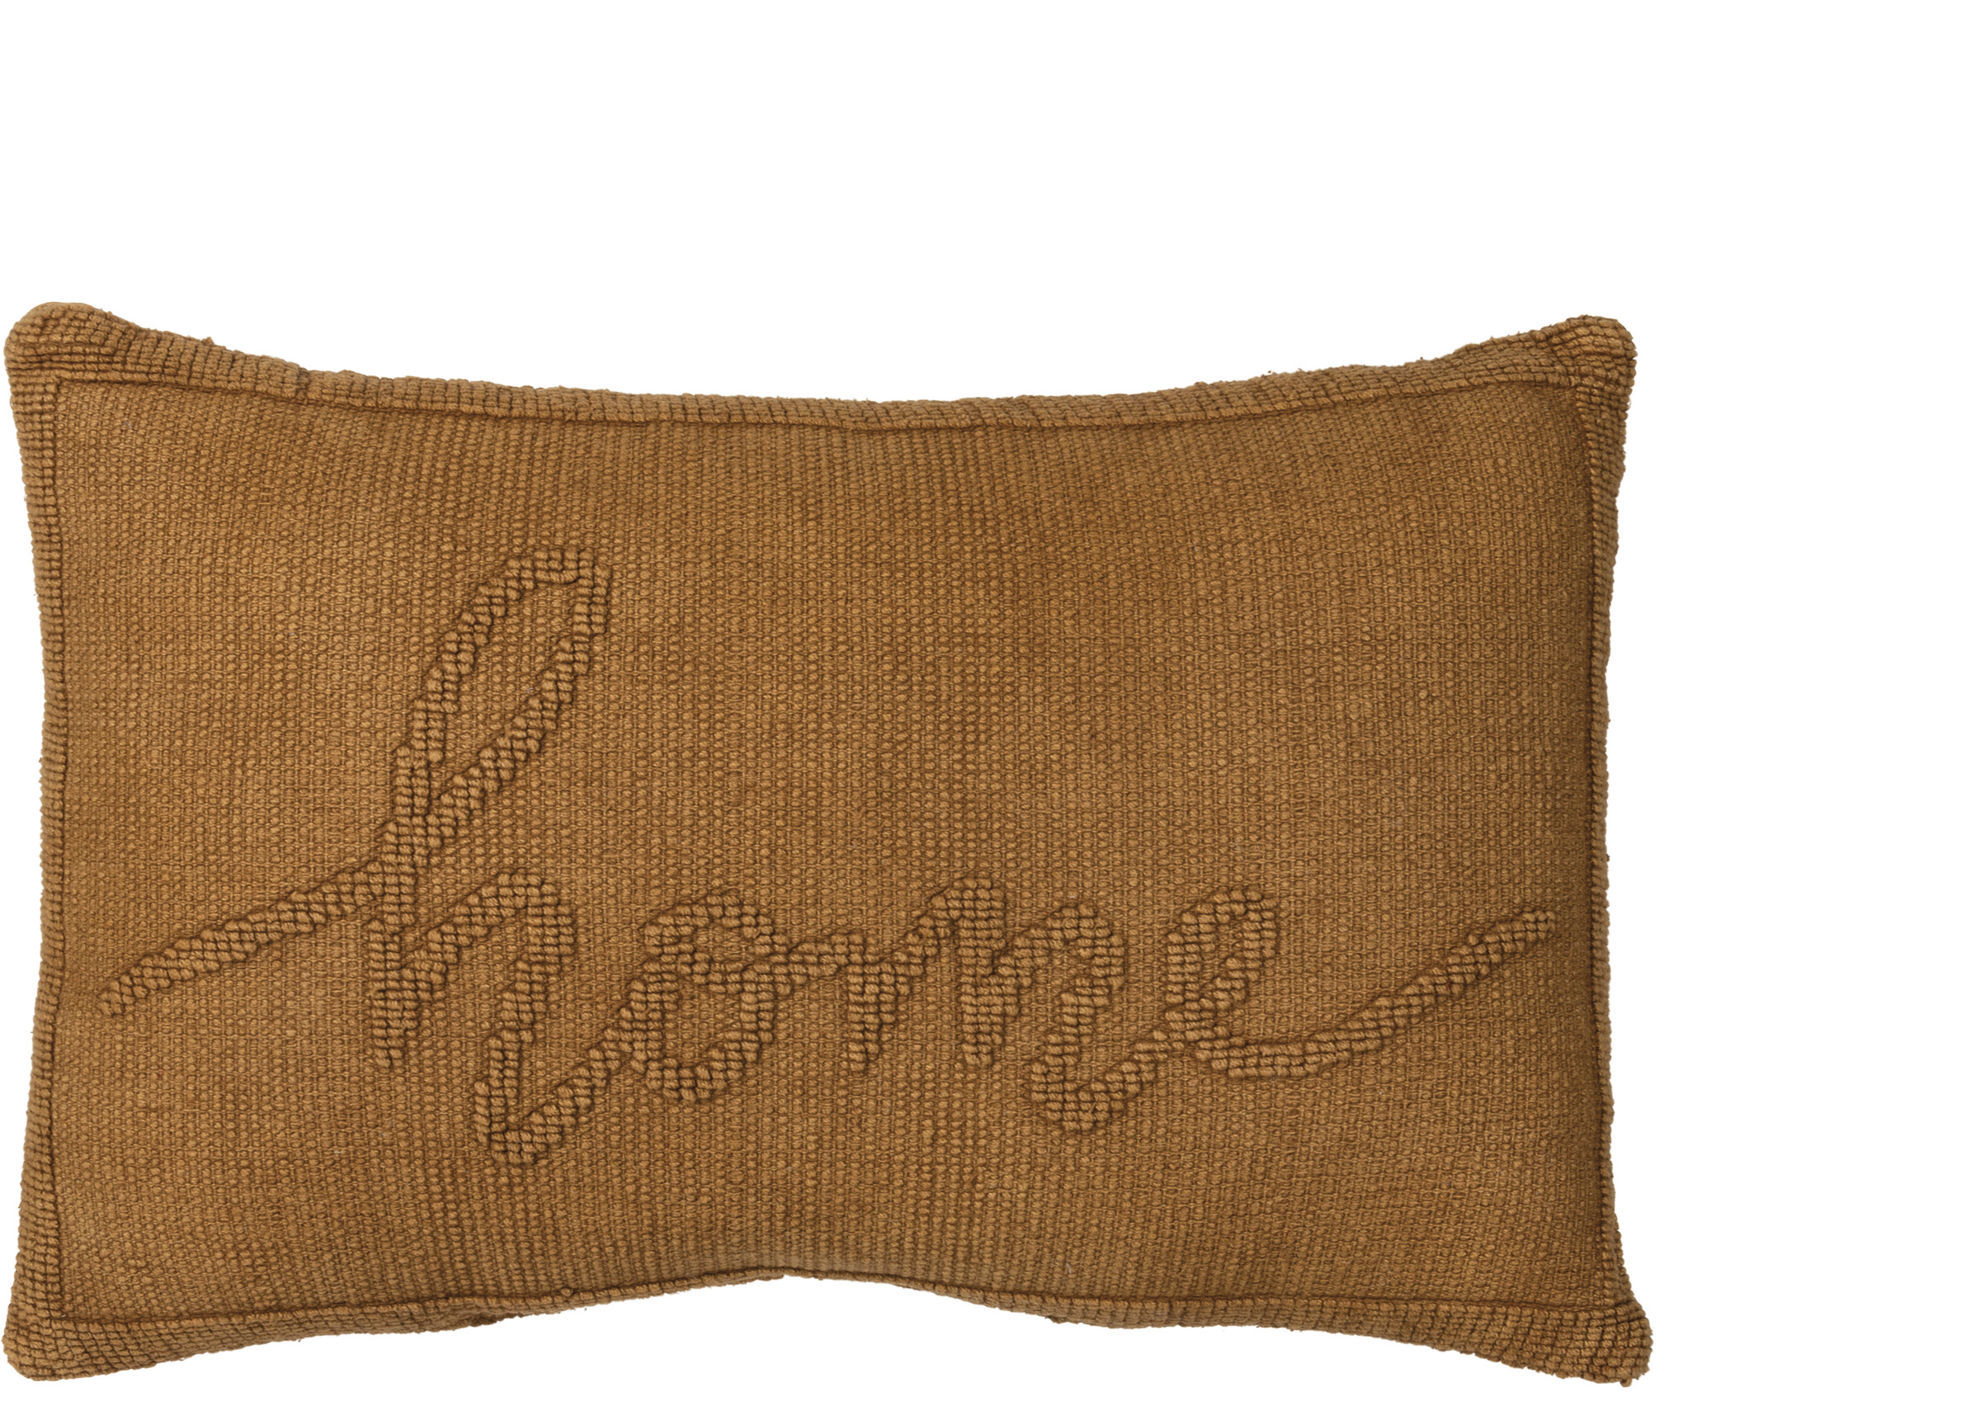 Home Pillow by Primitives by Kathy